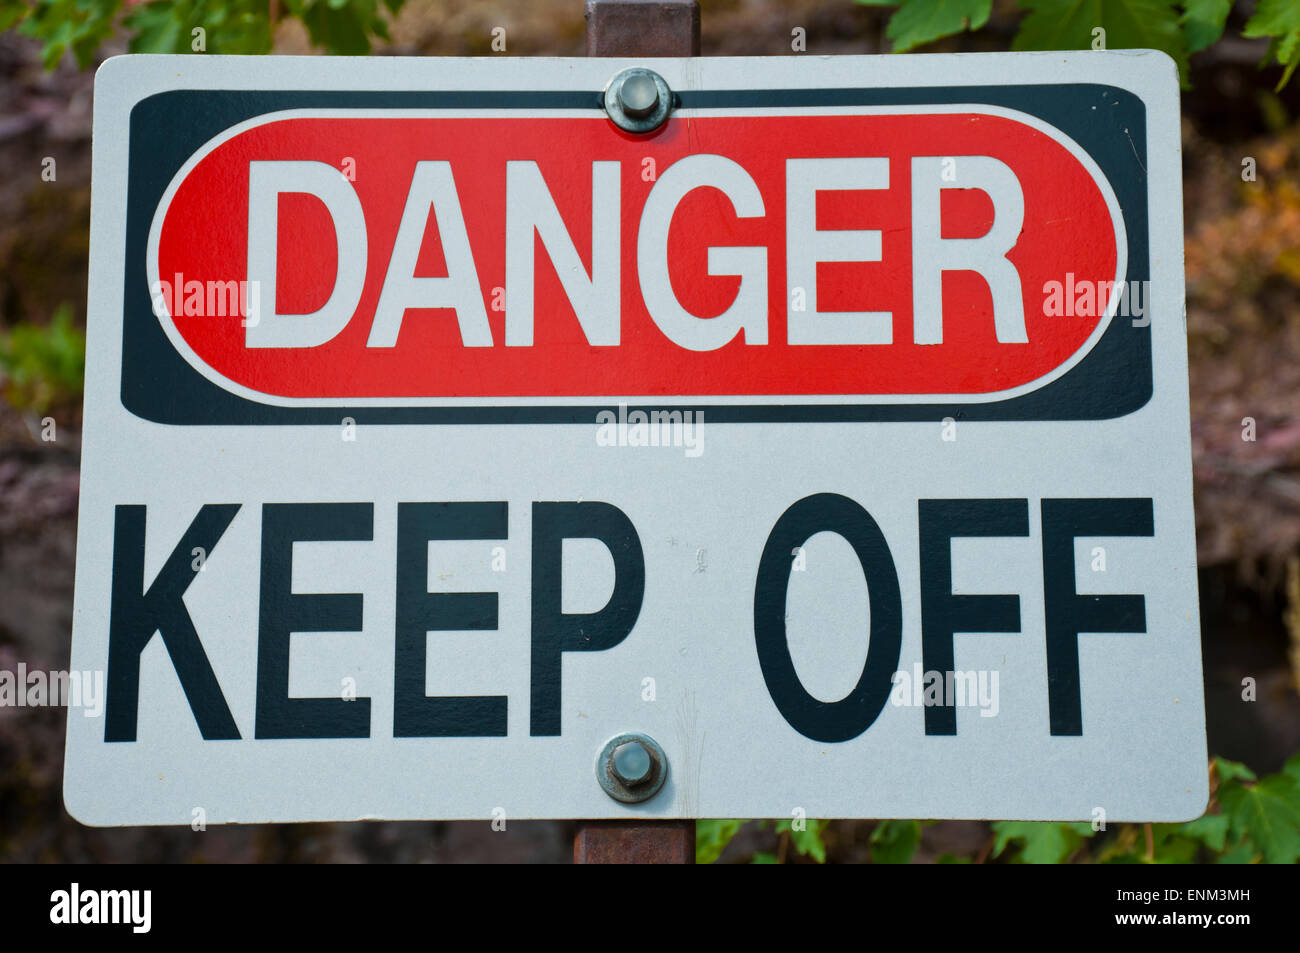 Danger warning sign - Stock Image